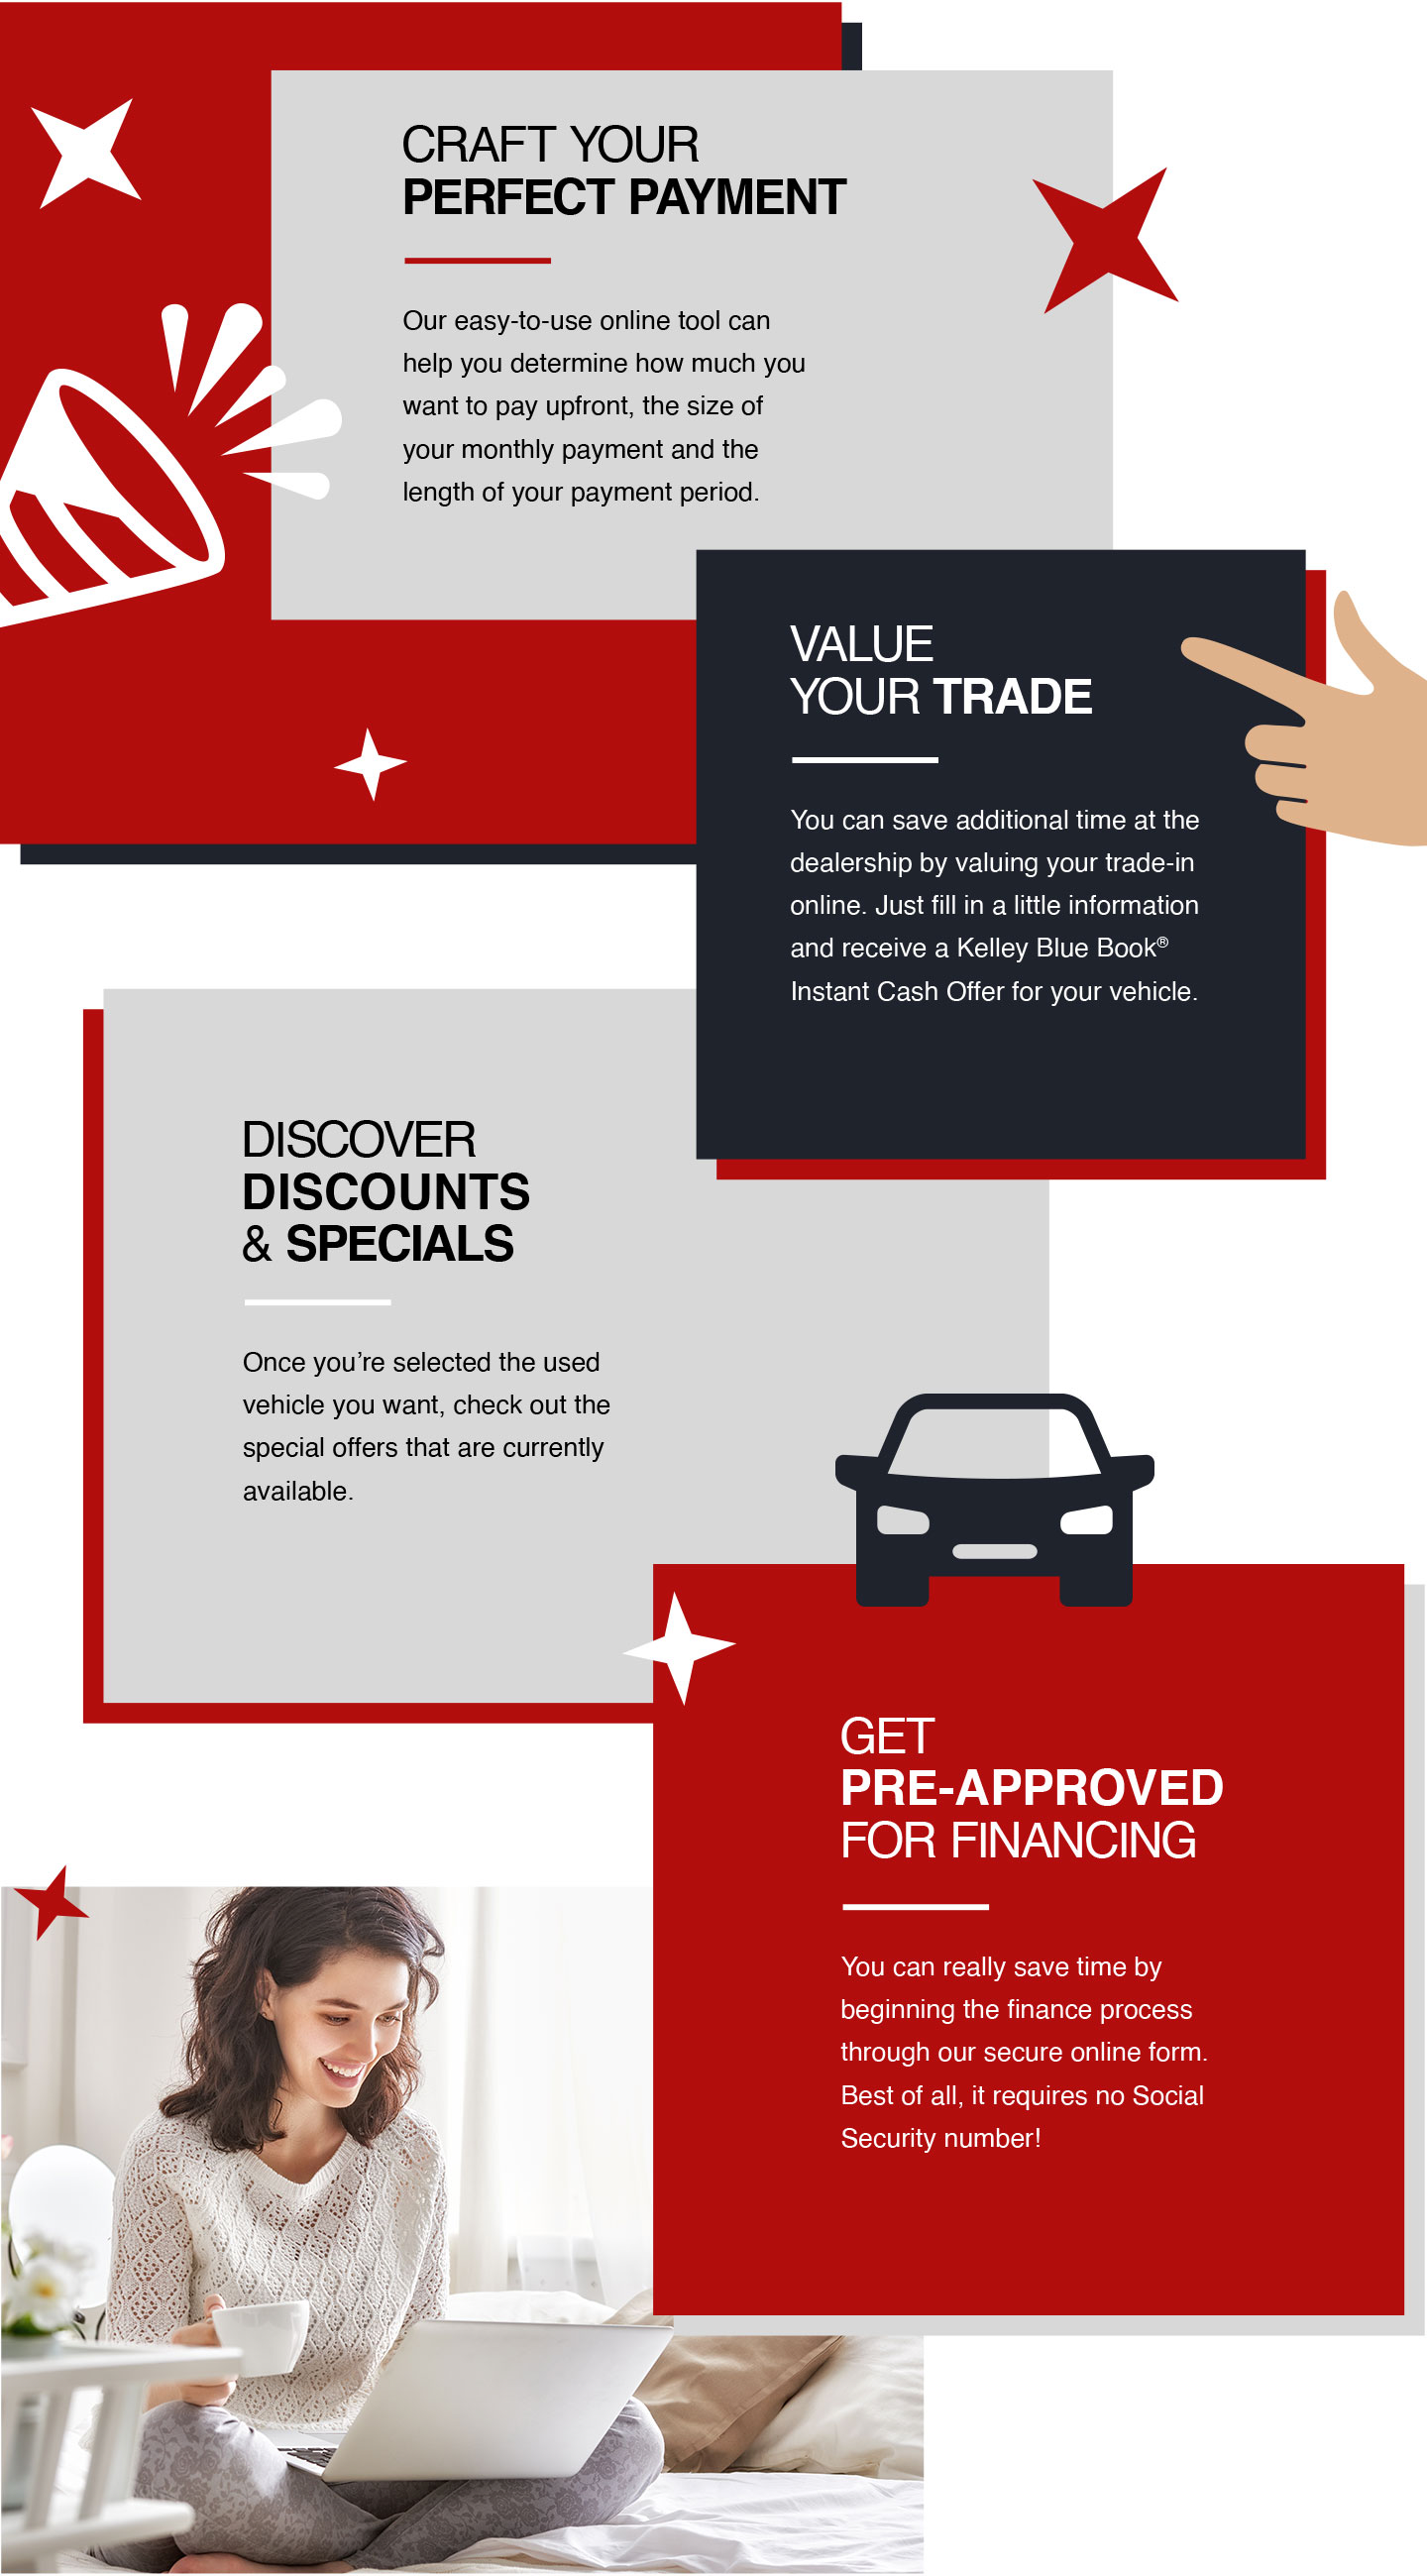 Craft Your Perfect Payment | Value Your Trade | Discover Discounts & Specials | Get Pre-Approved For Financing